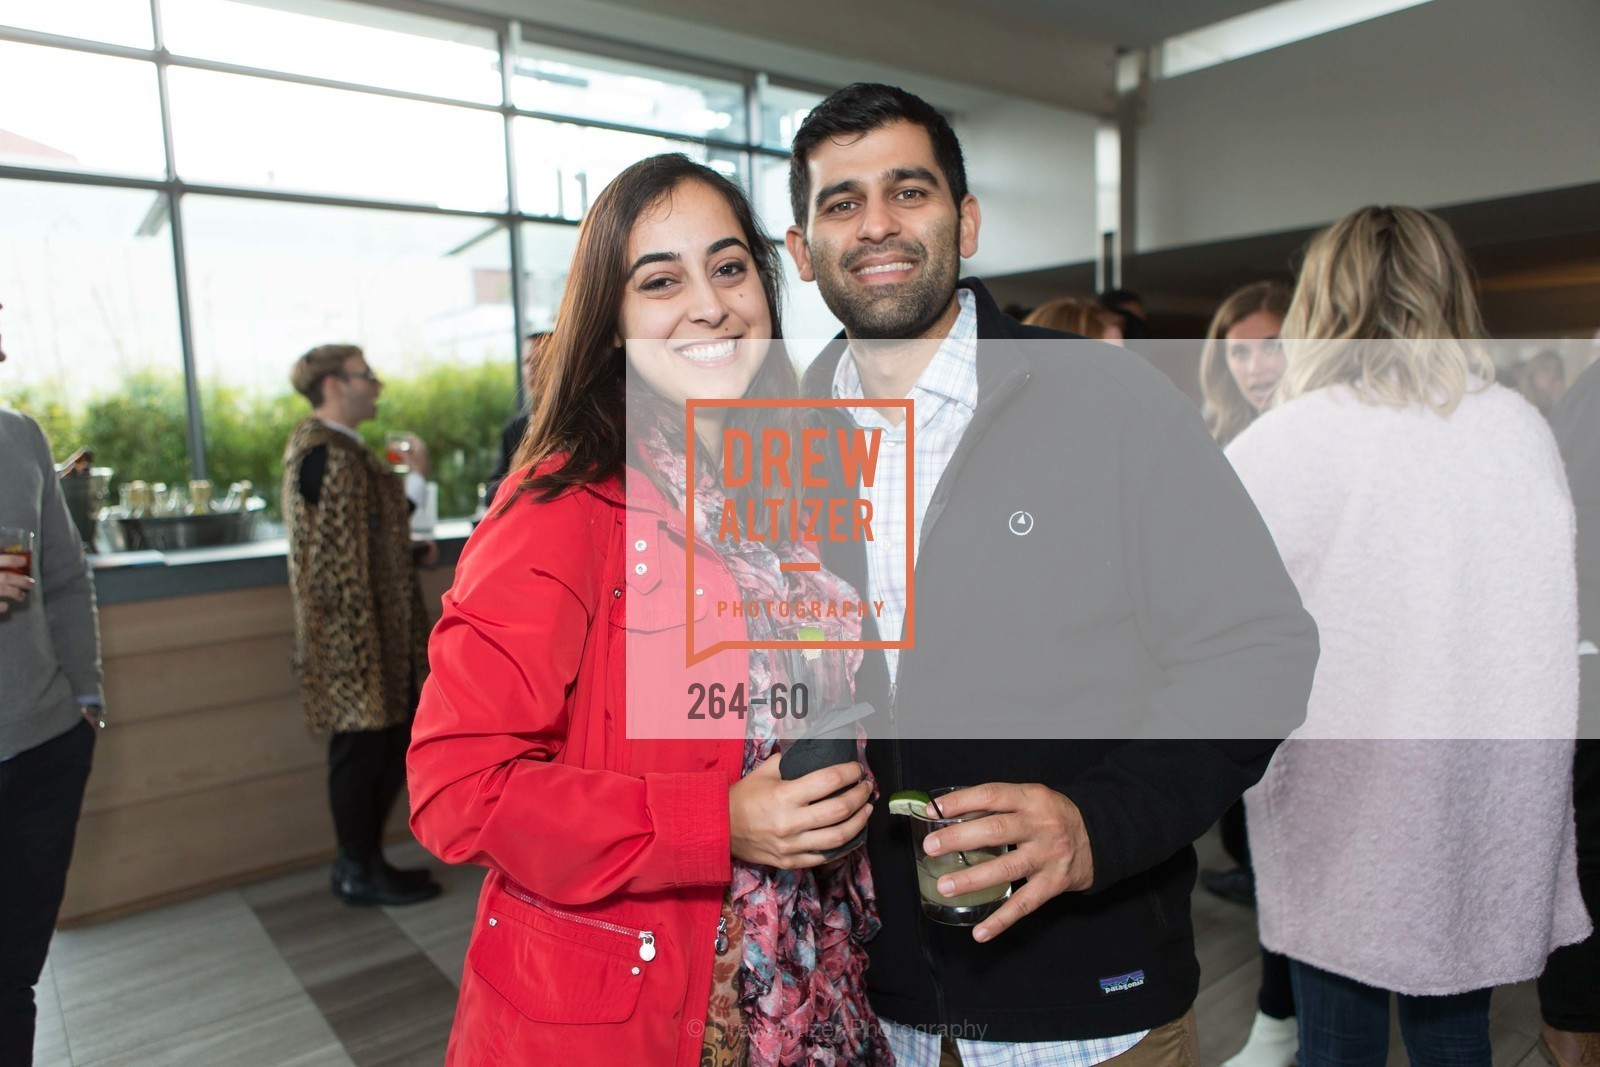 Firoozeh Mofakhami, Amit Phull, MR PORTER Celebrate The San Francisco Issue of The Journal, The Battery Rooftop - The Battery SF, April 23rd, 2015,Drew Altizer, Drew Altizer Photography, full-service agency, private events, San Francisco photographer, photographer california